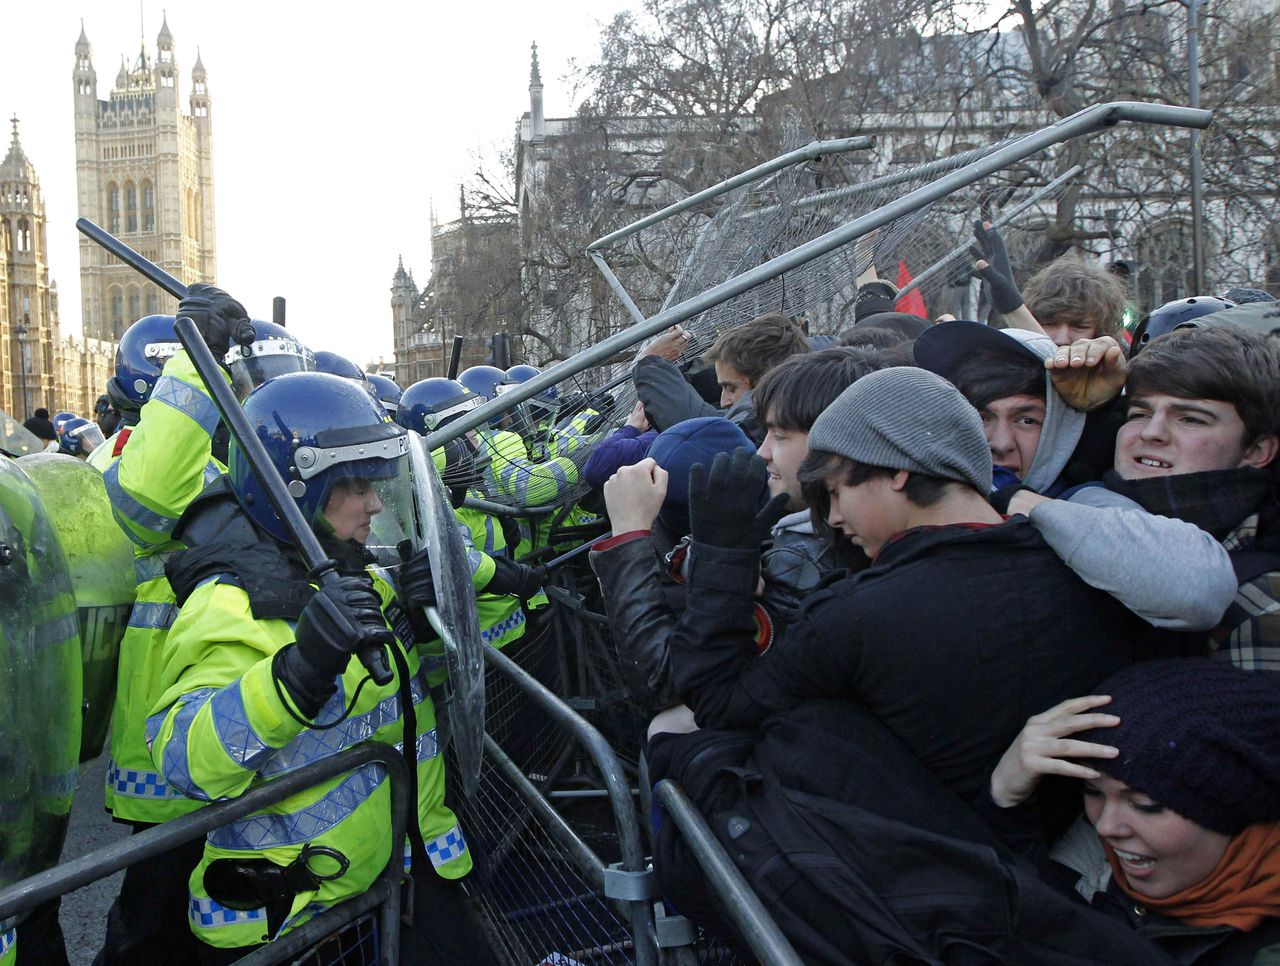 Demonstrators clash with police during a protest in Westminster, central London December 9, 2010. Britain's parliament on Thursday approved plans to increase fees paid by university students despite a rebellion by members of the coalition government. Protesters had earlier clashed with police outside parliament in central London during the debate. REUTERS/Luke MacGregor (Britain - Tags: BUSINESS CIVIL UNREST POLITICS EDUCATION SOCIETY)